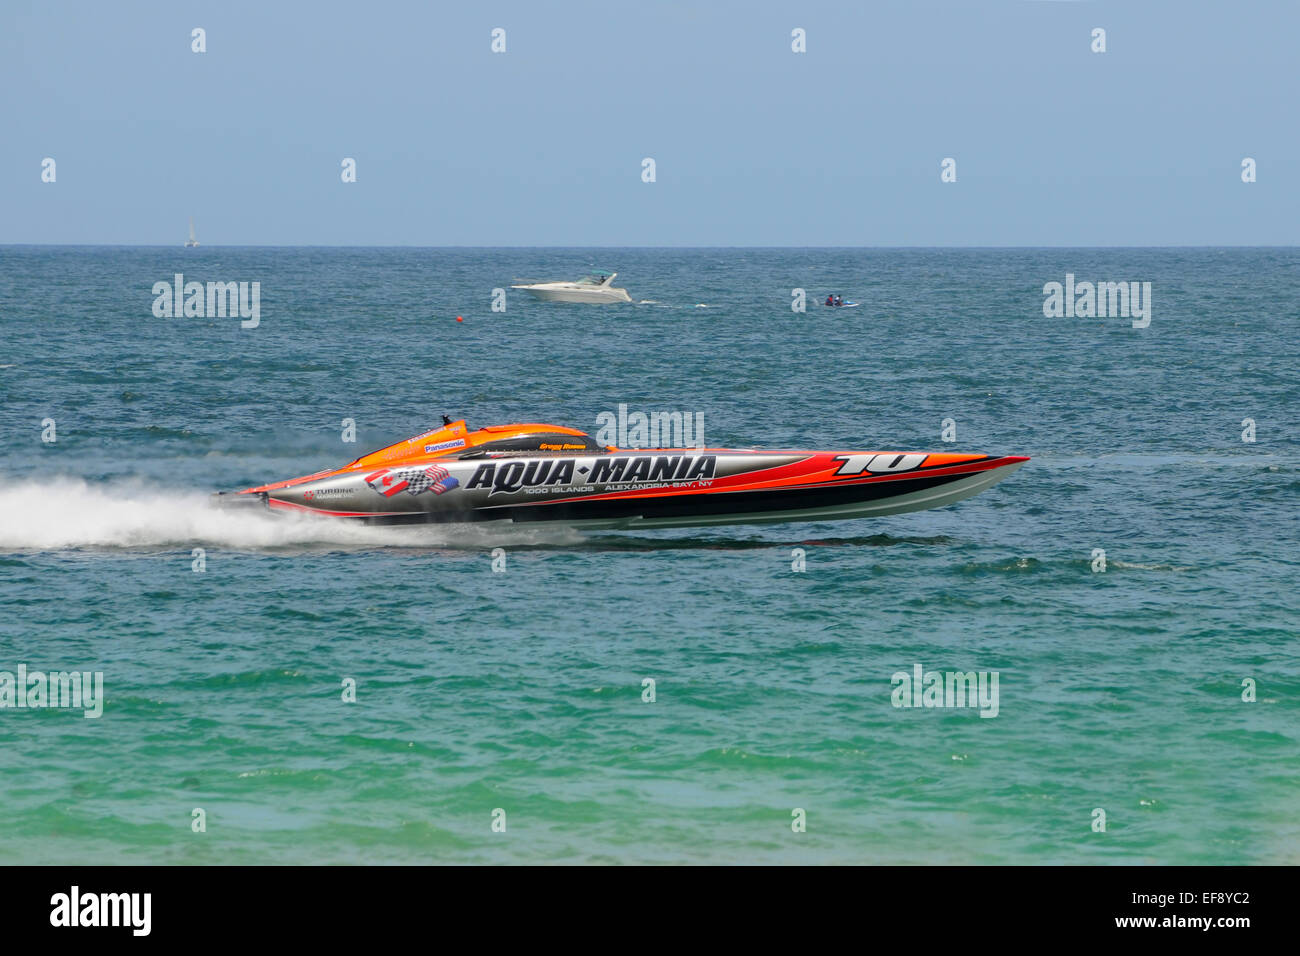 Fort Lauderdale, FL - June 7, 2009: Panasonic Fort Lauderdale Offshore race in choppy waters - Stock Image